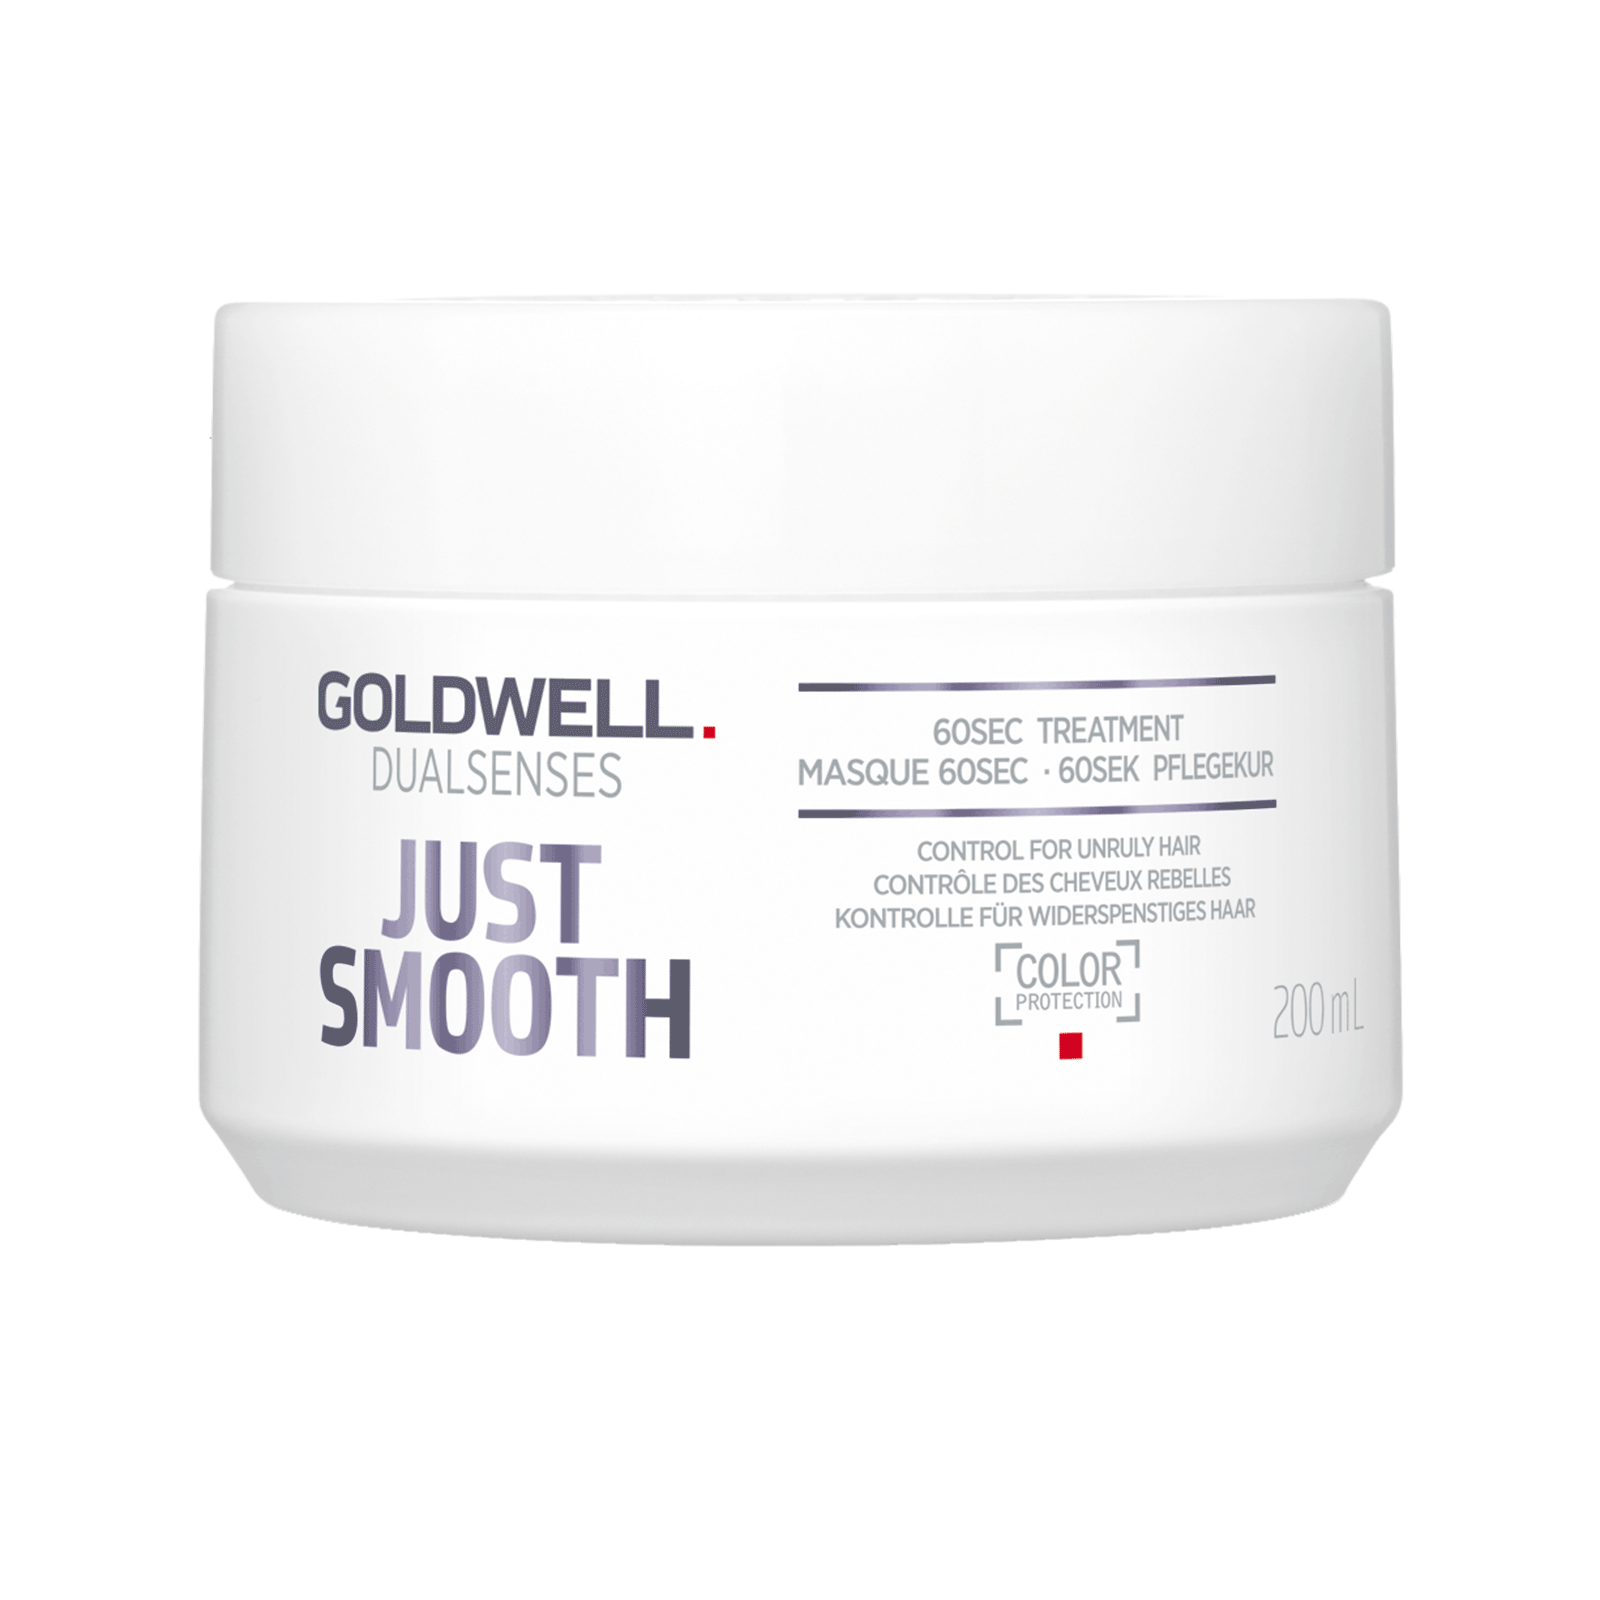 Dualsenses Just Smooth Taming 60 second Treatment